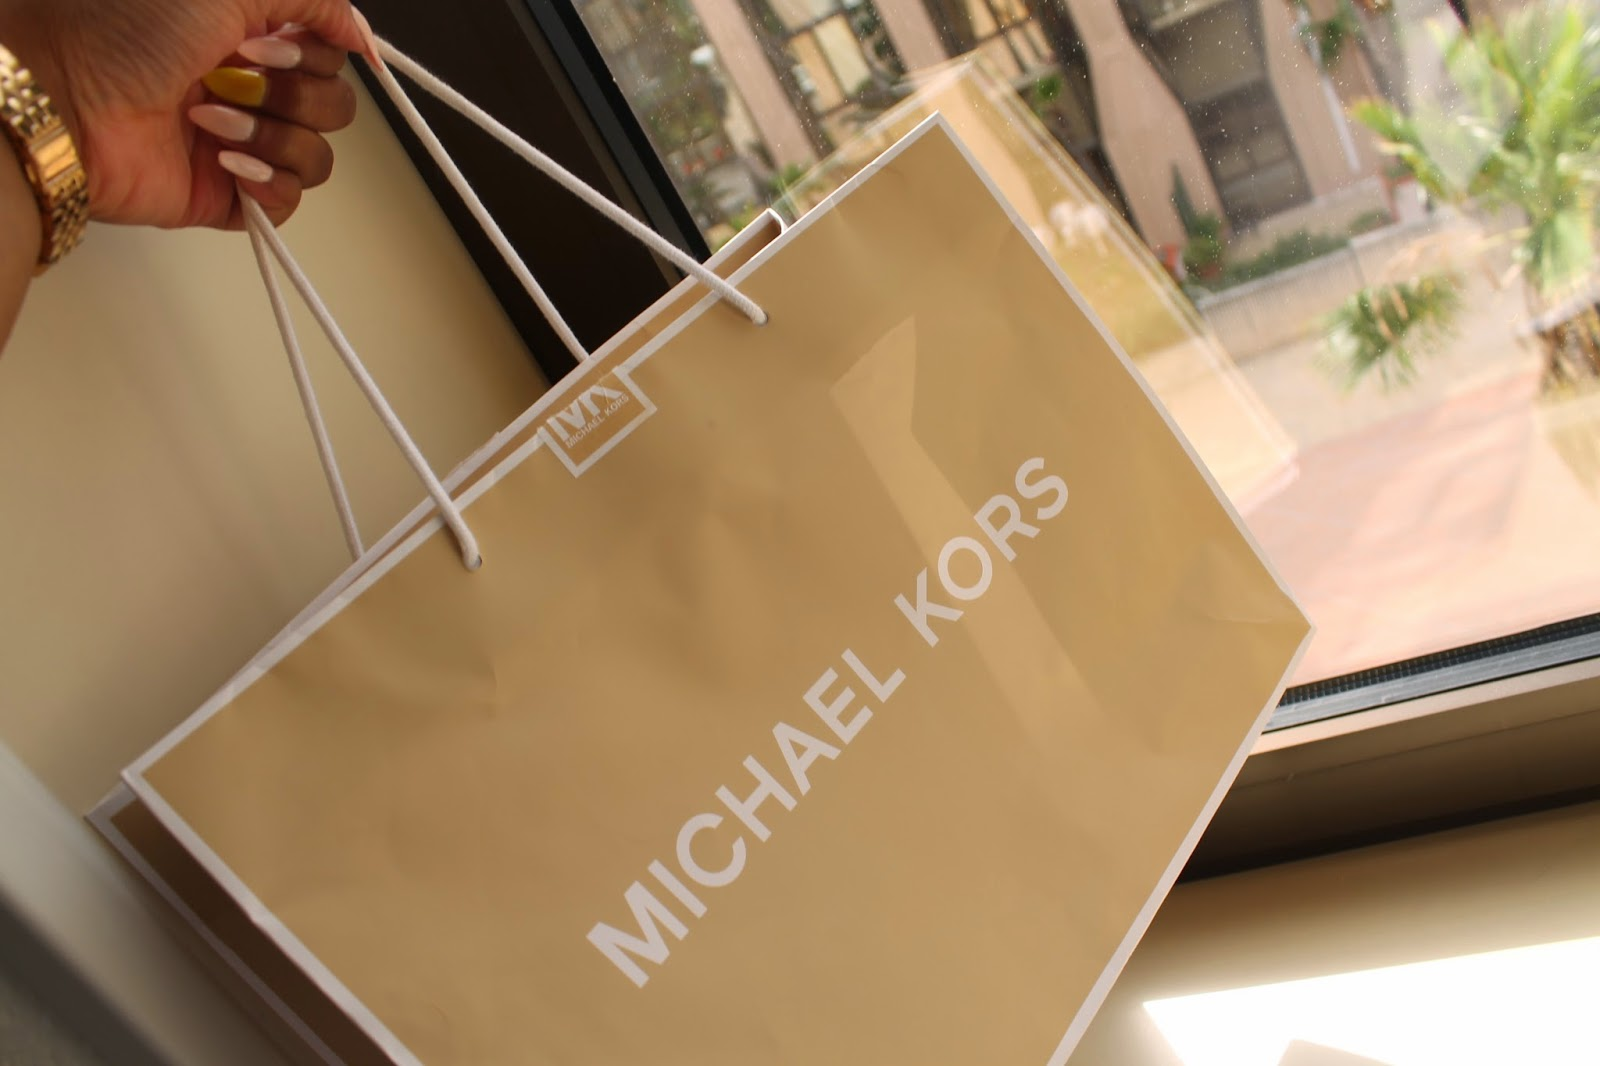 2db664c96a Chioma - Beauty Blogger  unboxing  Michael Kors Red Large Hamilton ...